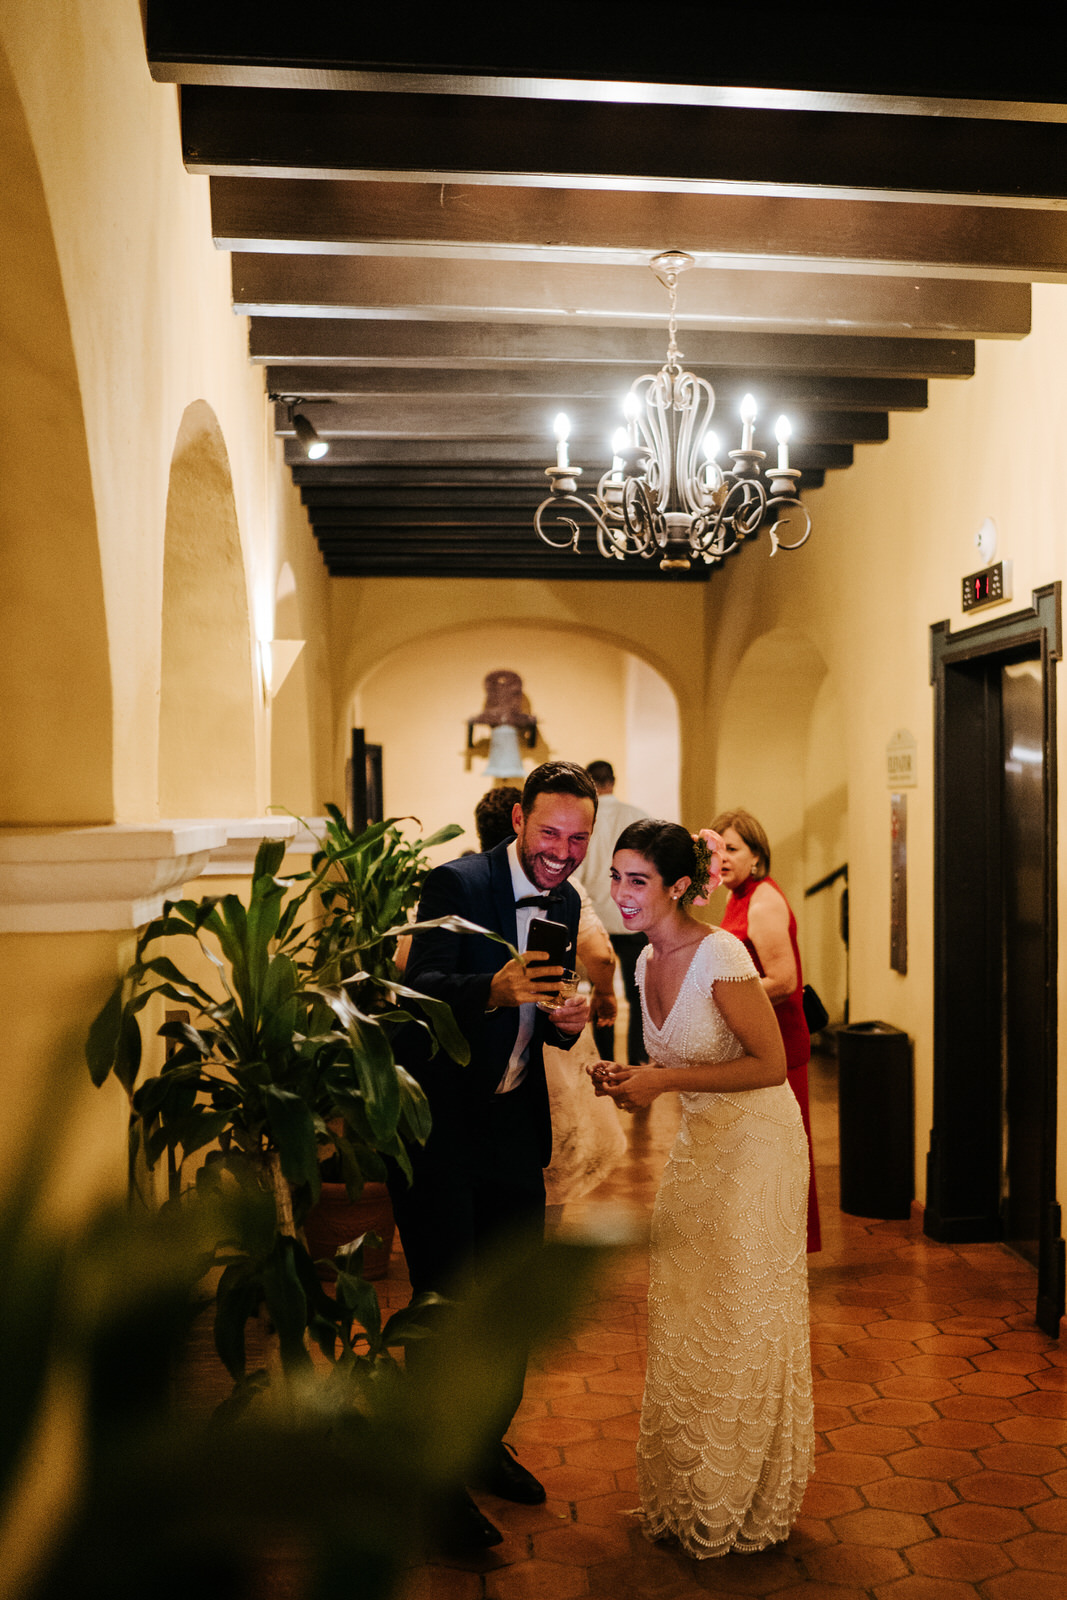 Bride stands in the hallway of the wedding venue as a friend shows her a photo on his phone and they both smile